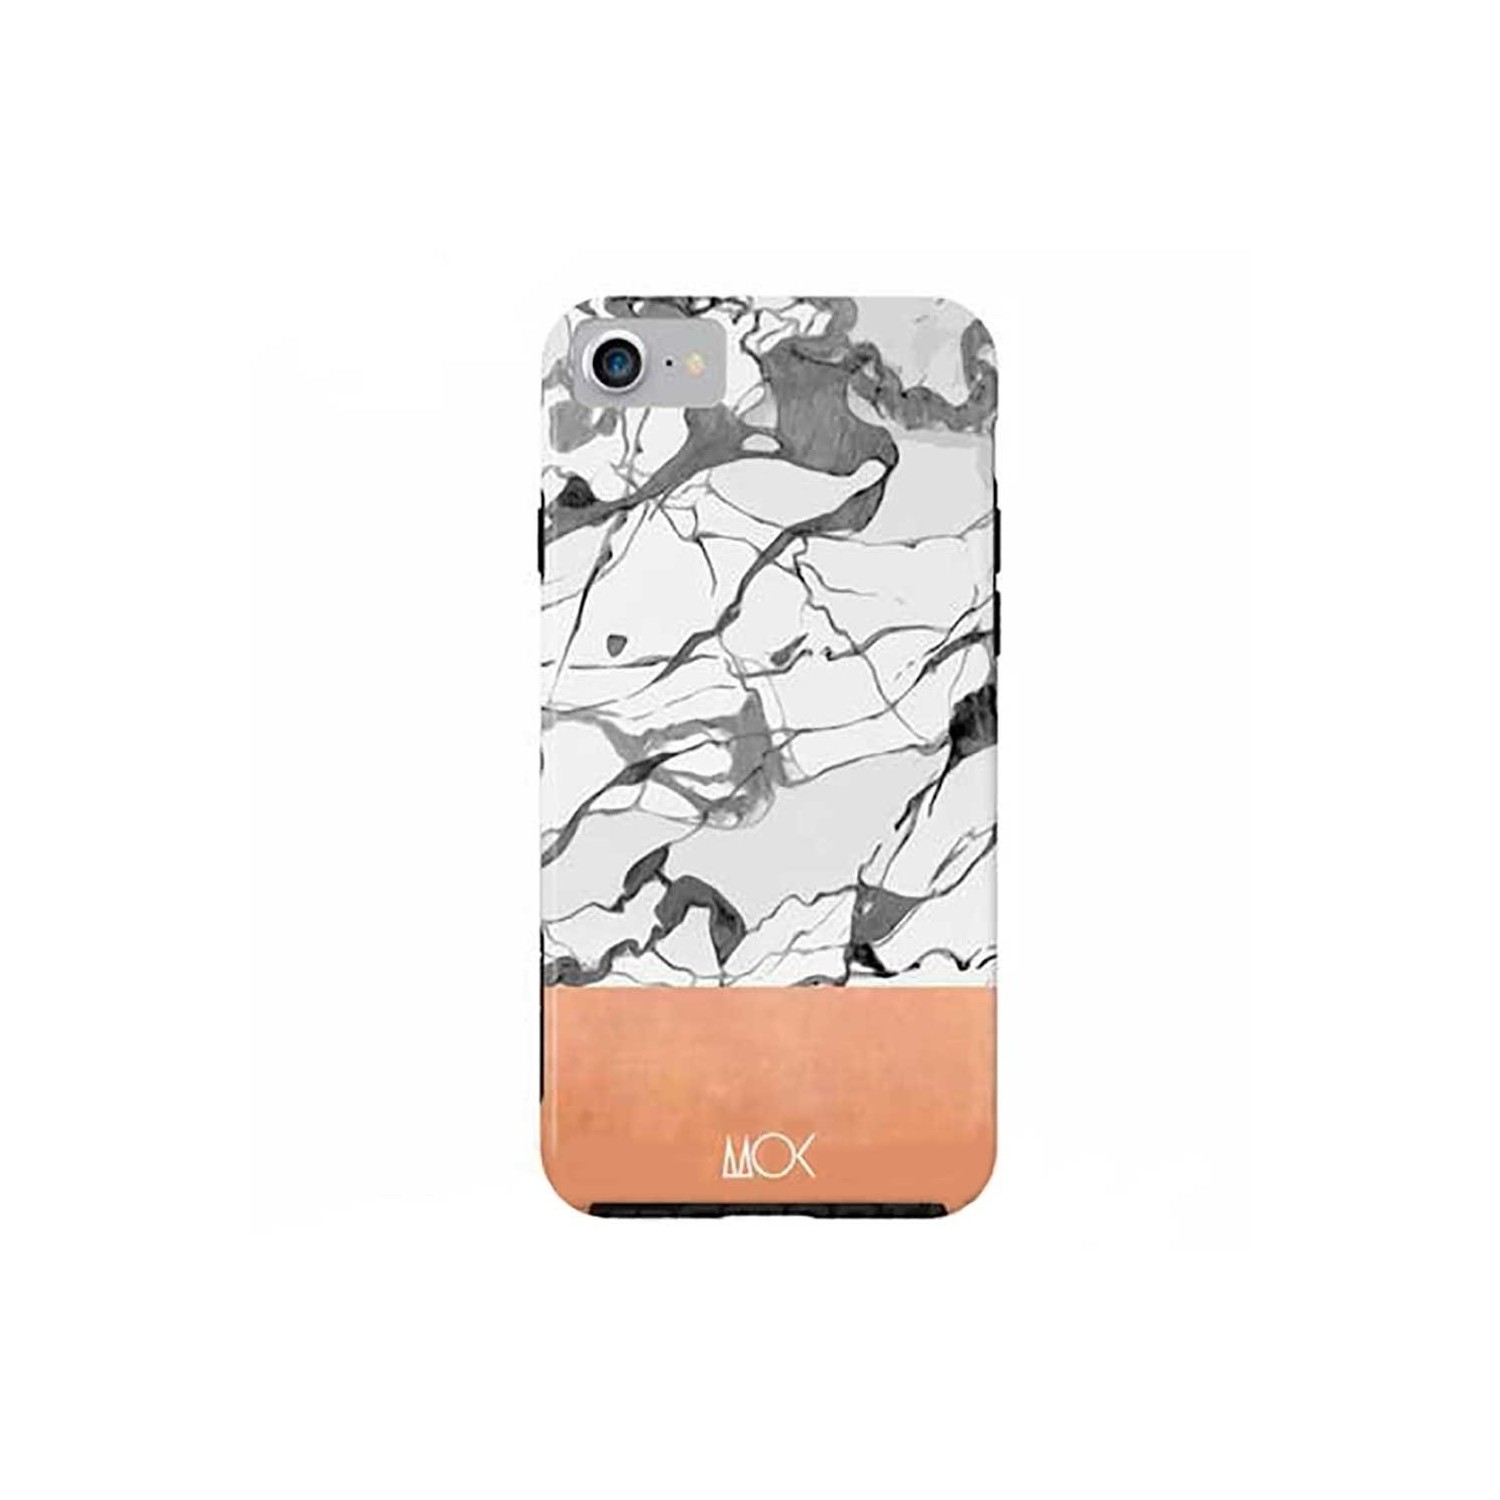 Case -  ArtsCase StrongFit for iPhone 7 Marble Copper by MOK